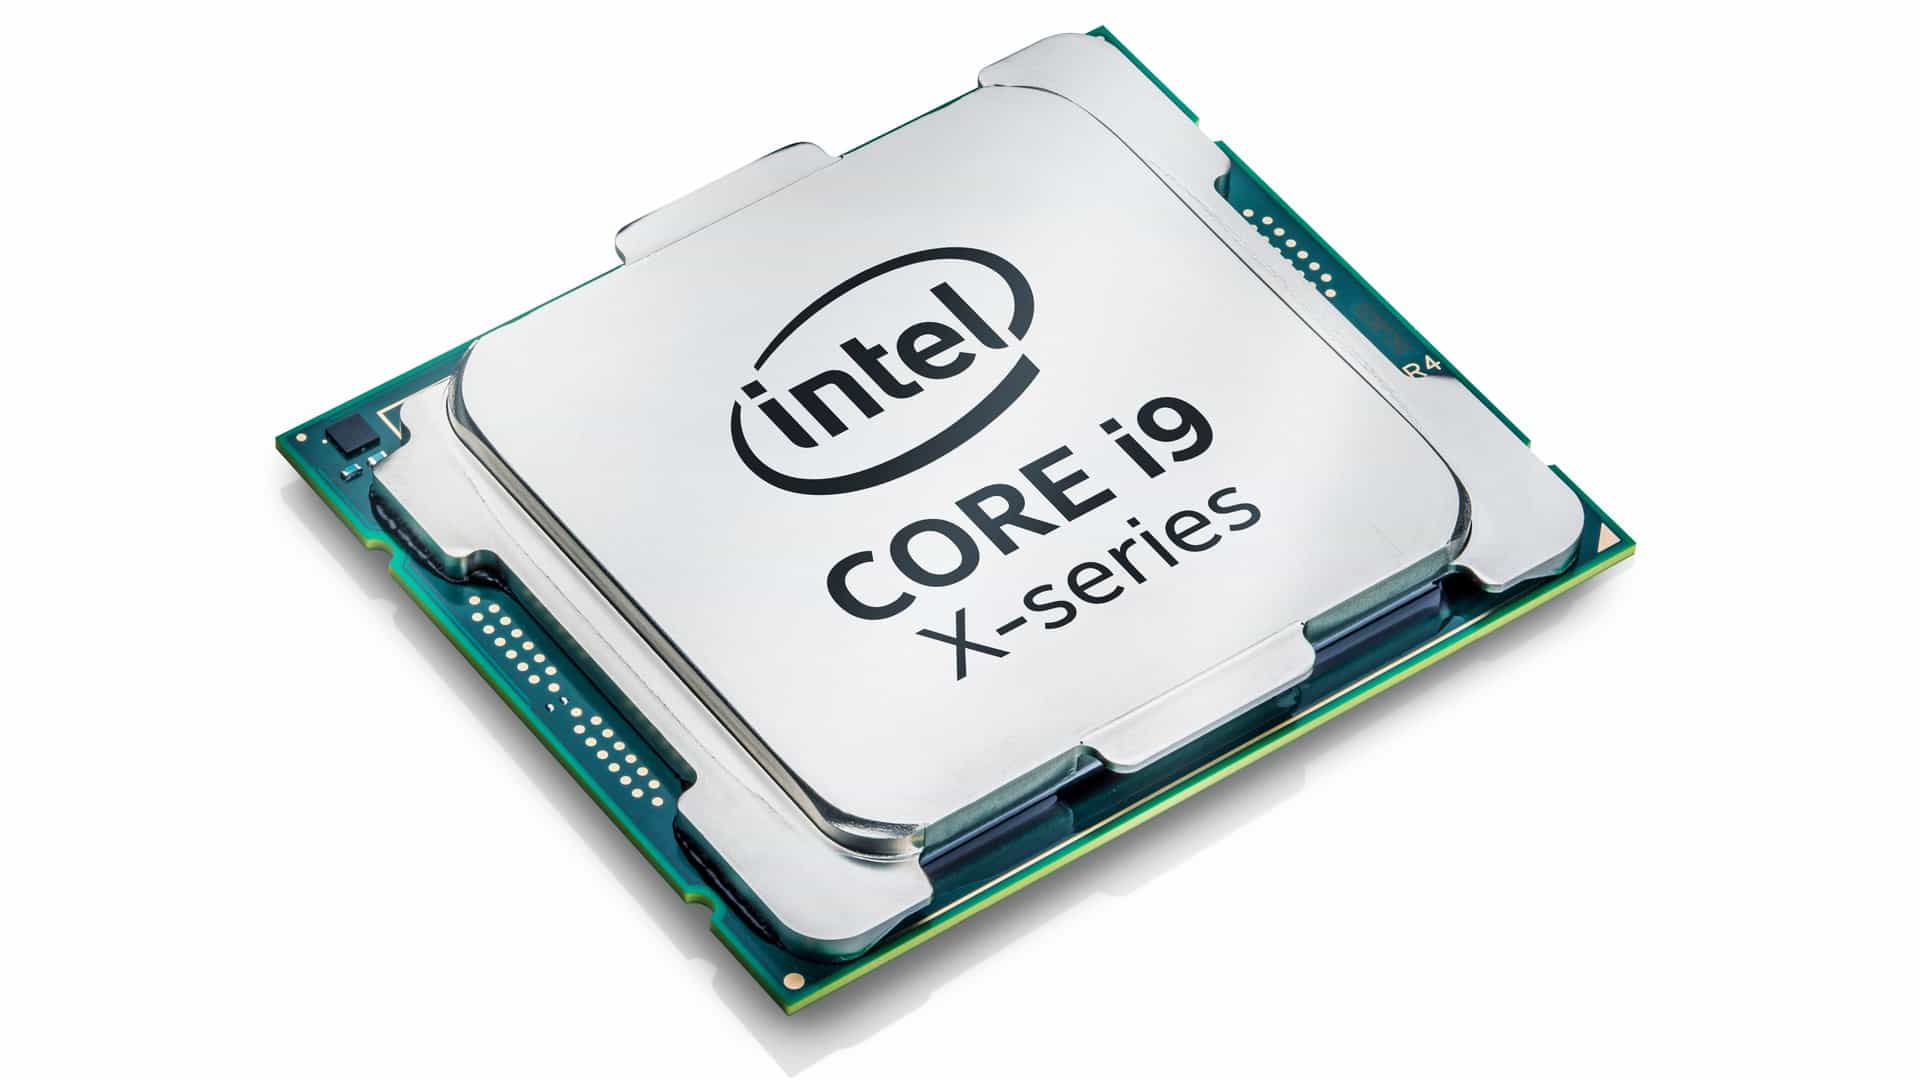 s-intel-core-x-series-processor-family-i9-skylake-x-lga-2066-1600